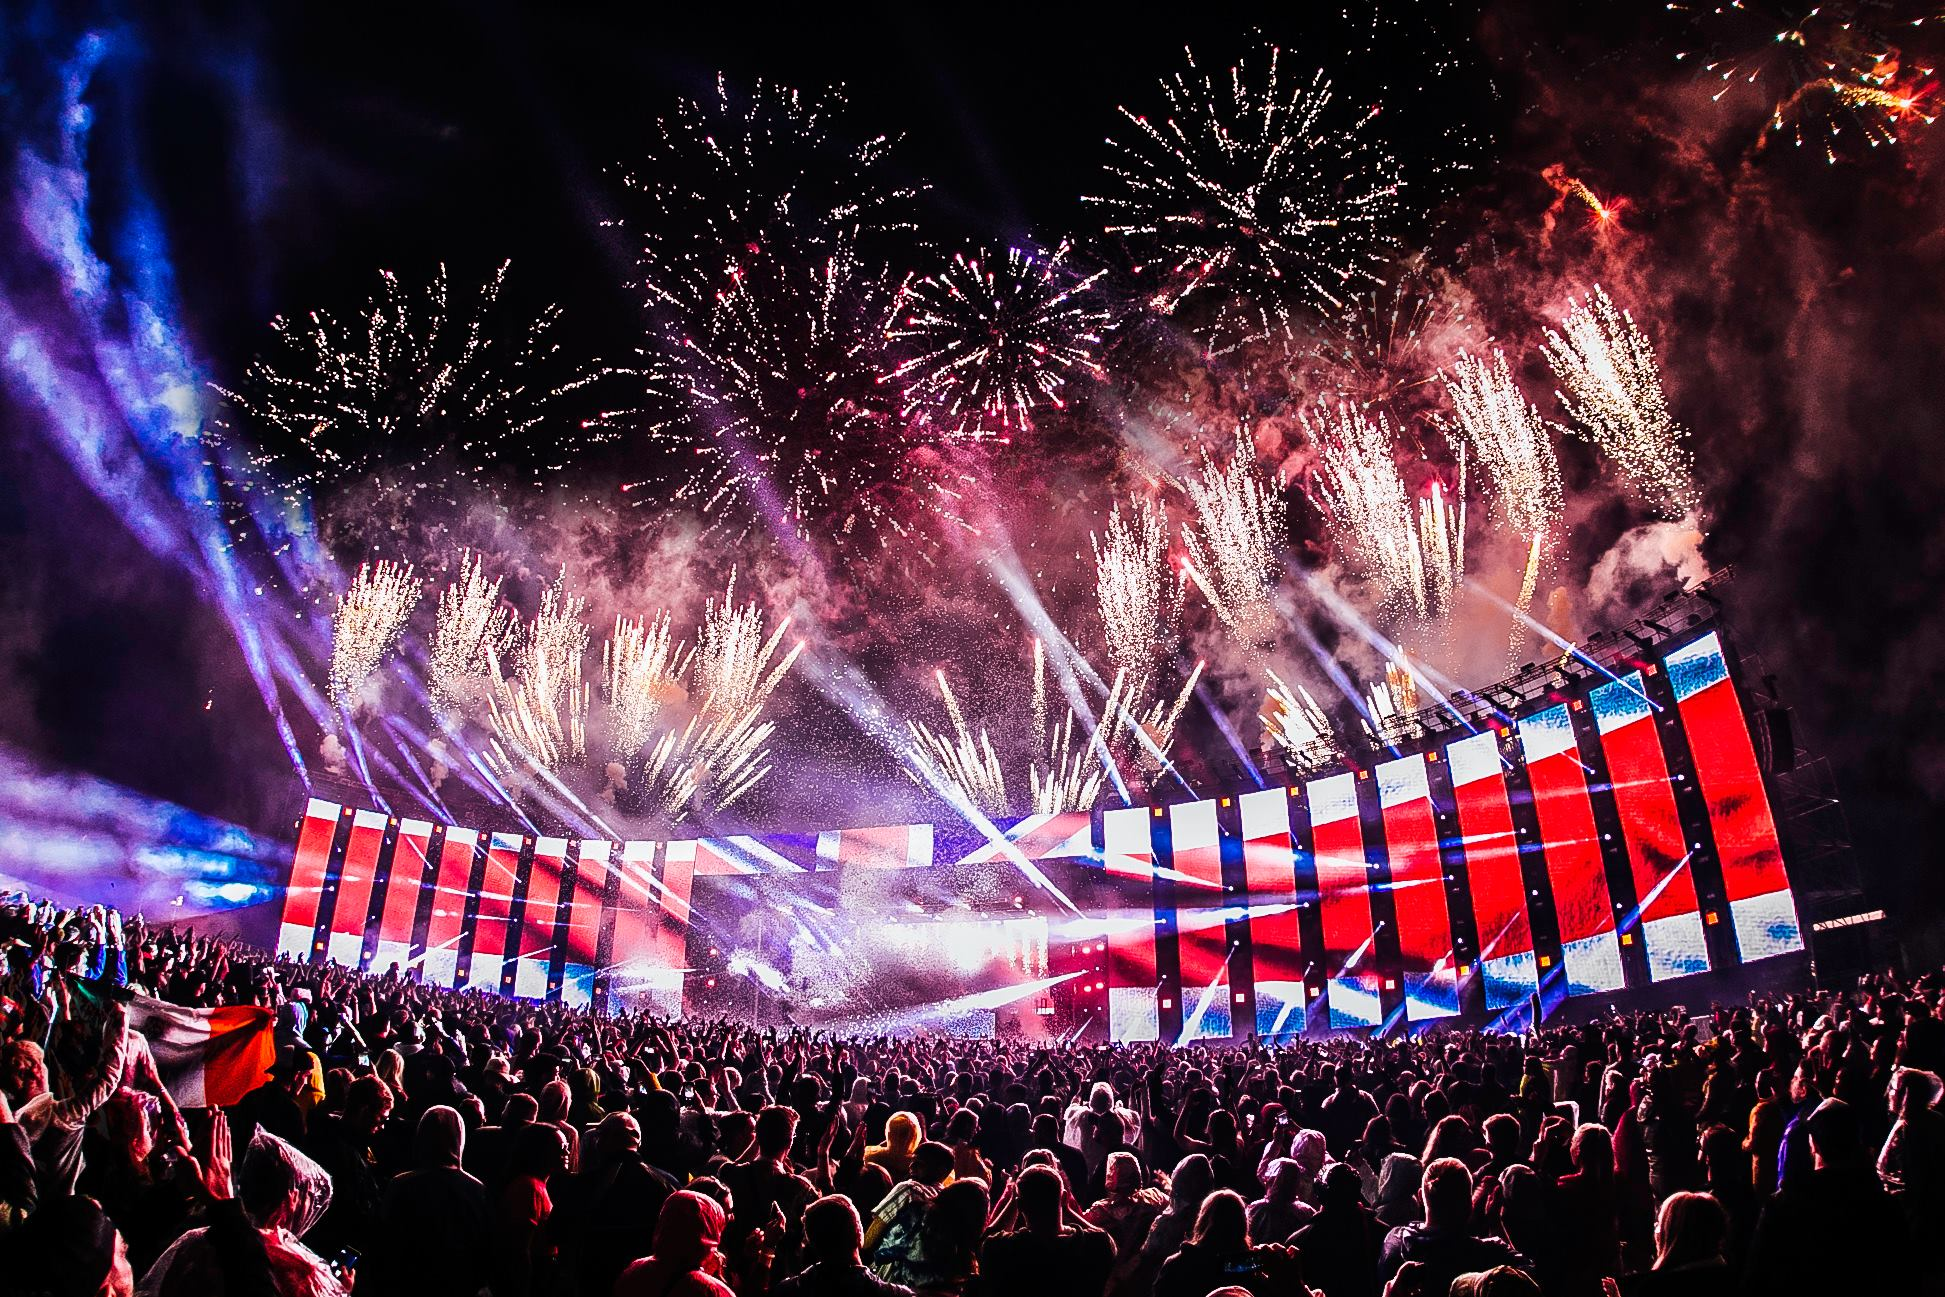 Creamfields 2019: Relive Live Sets from Swedish House Mafia, deadmau5 & More